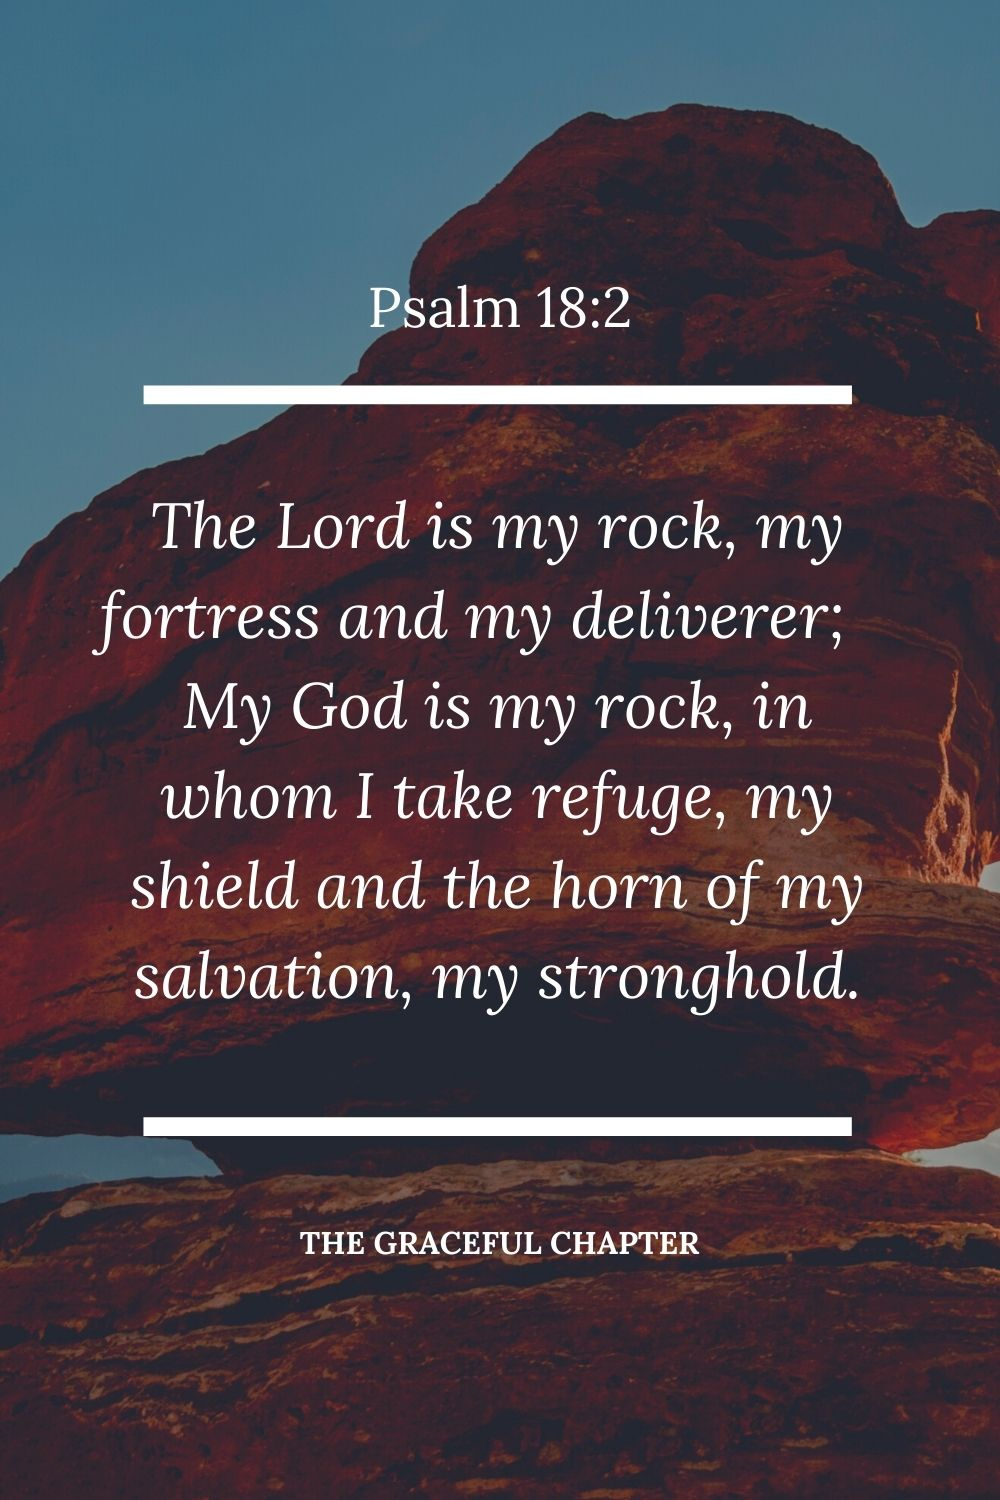 The Lord is my rock, my fortress and my deliverer; my God is my rock, in whom I take refuge, my shield and the horn of my salvation, my stronghold. Psalm 18:2